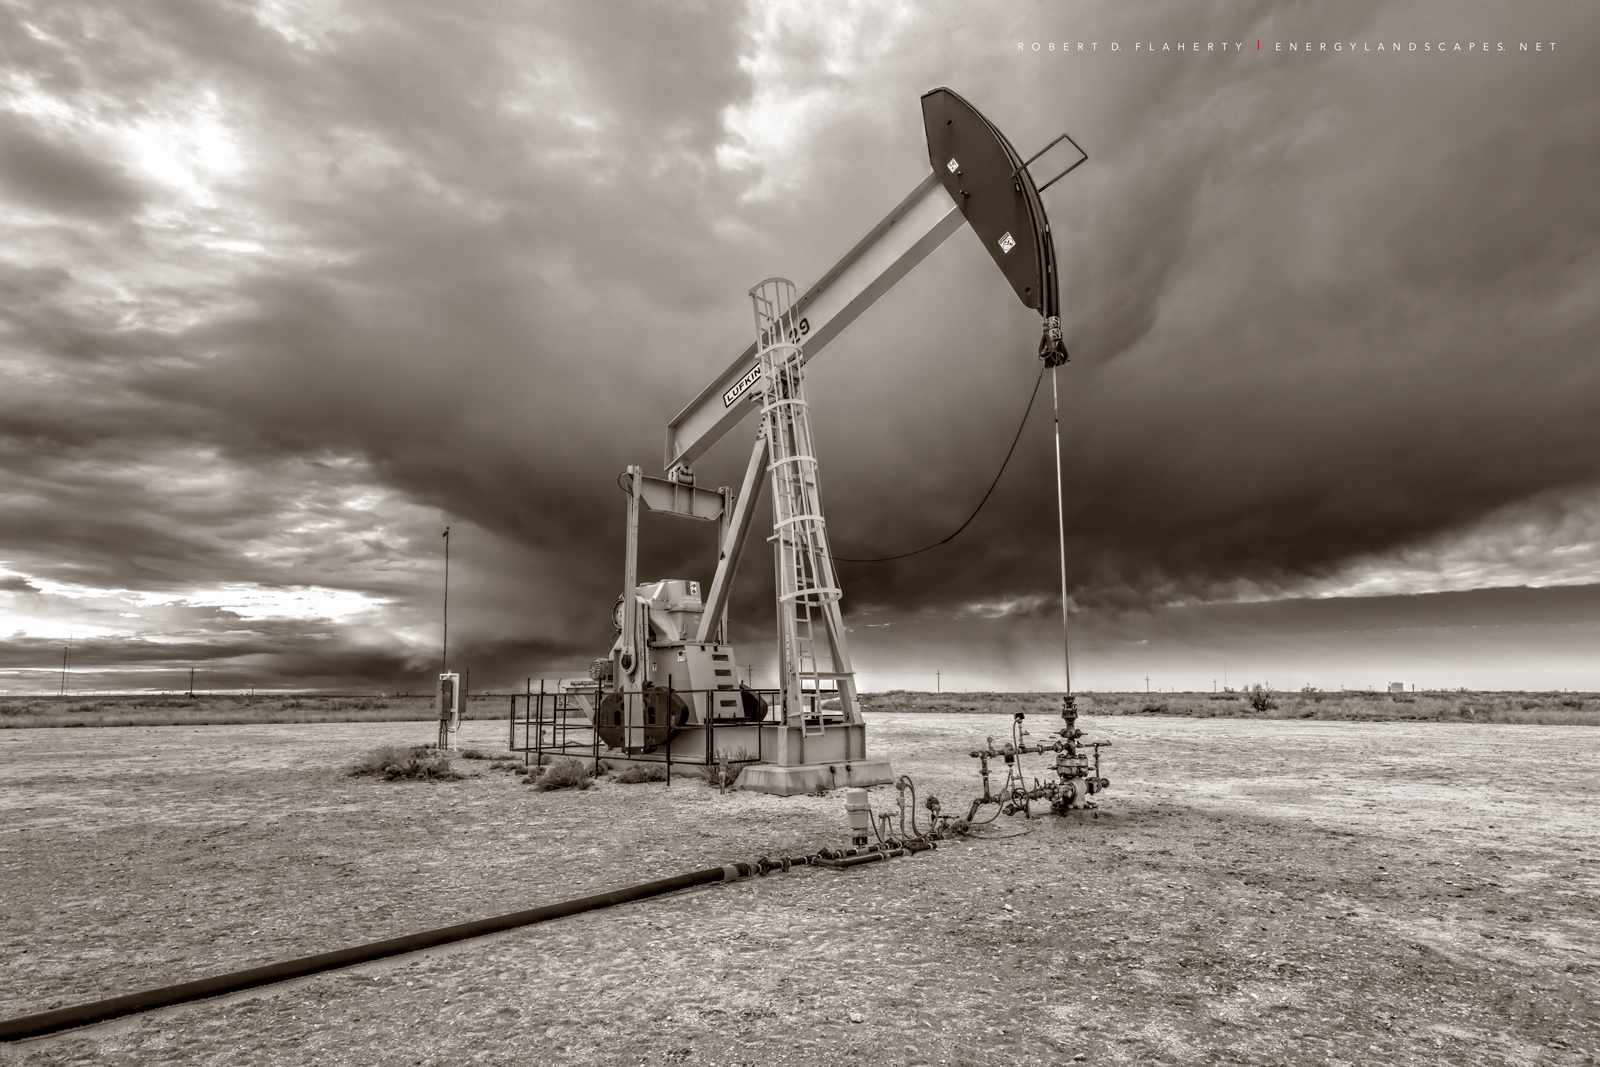 Oxy USA, pumpjack, pump jack, Winter, winter storm, New Mexico, fine art photography, sepia, black & white photography, black and white photography, high resolution, Eastern New Mexico, Delaware Basin, photo